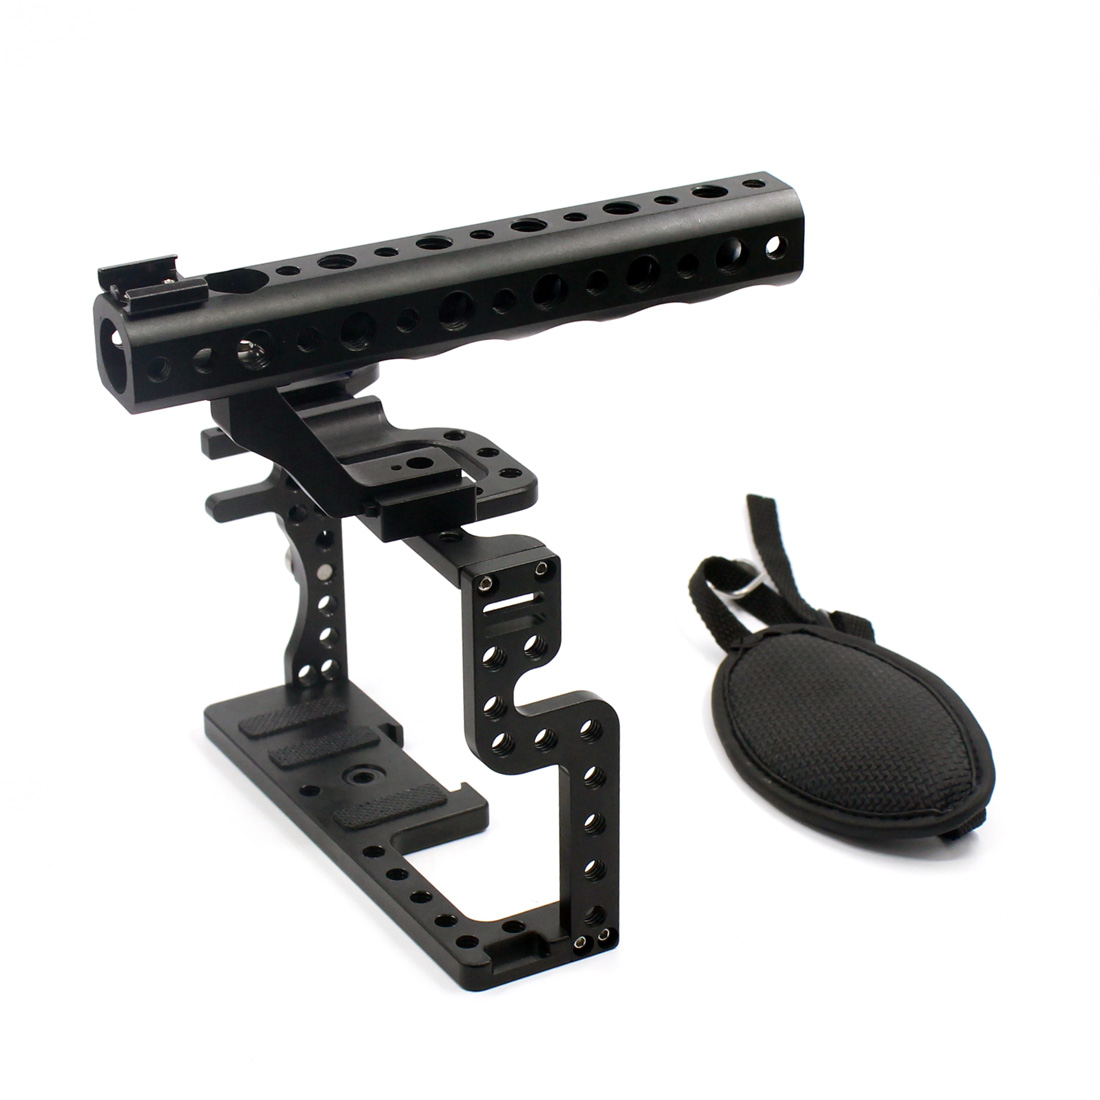 F11100 Professional GH3 GH4 Protective Housing Case Handle Grip Rugged Cage Combo Set Tray Mount DSLR Rig Digital Camera